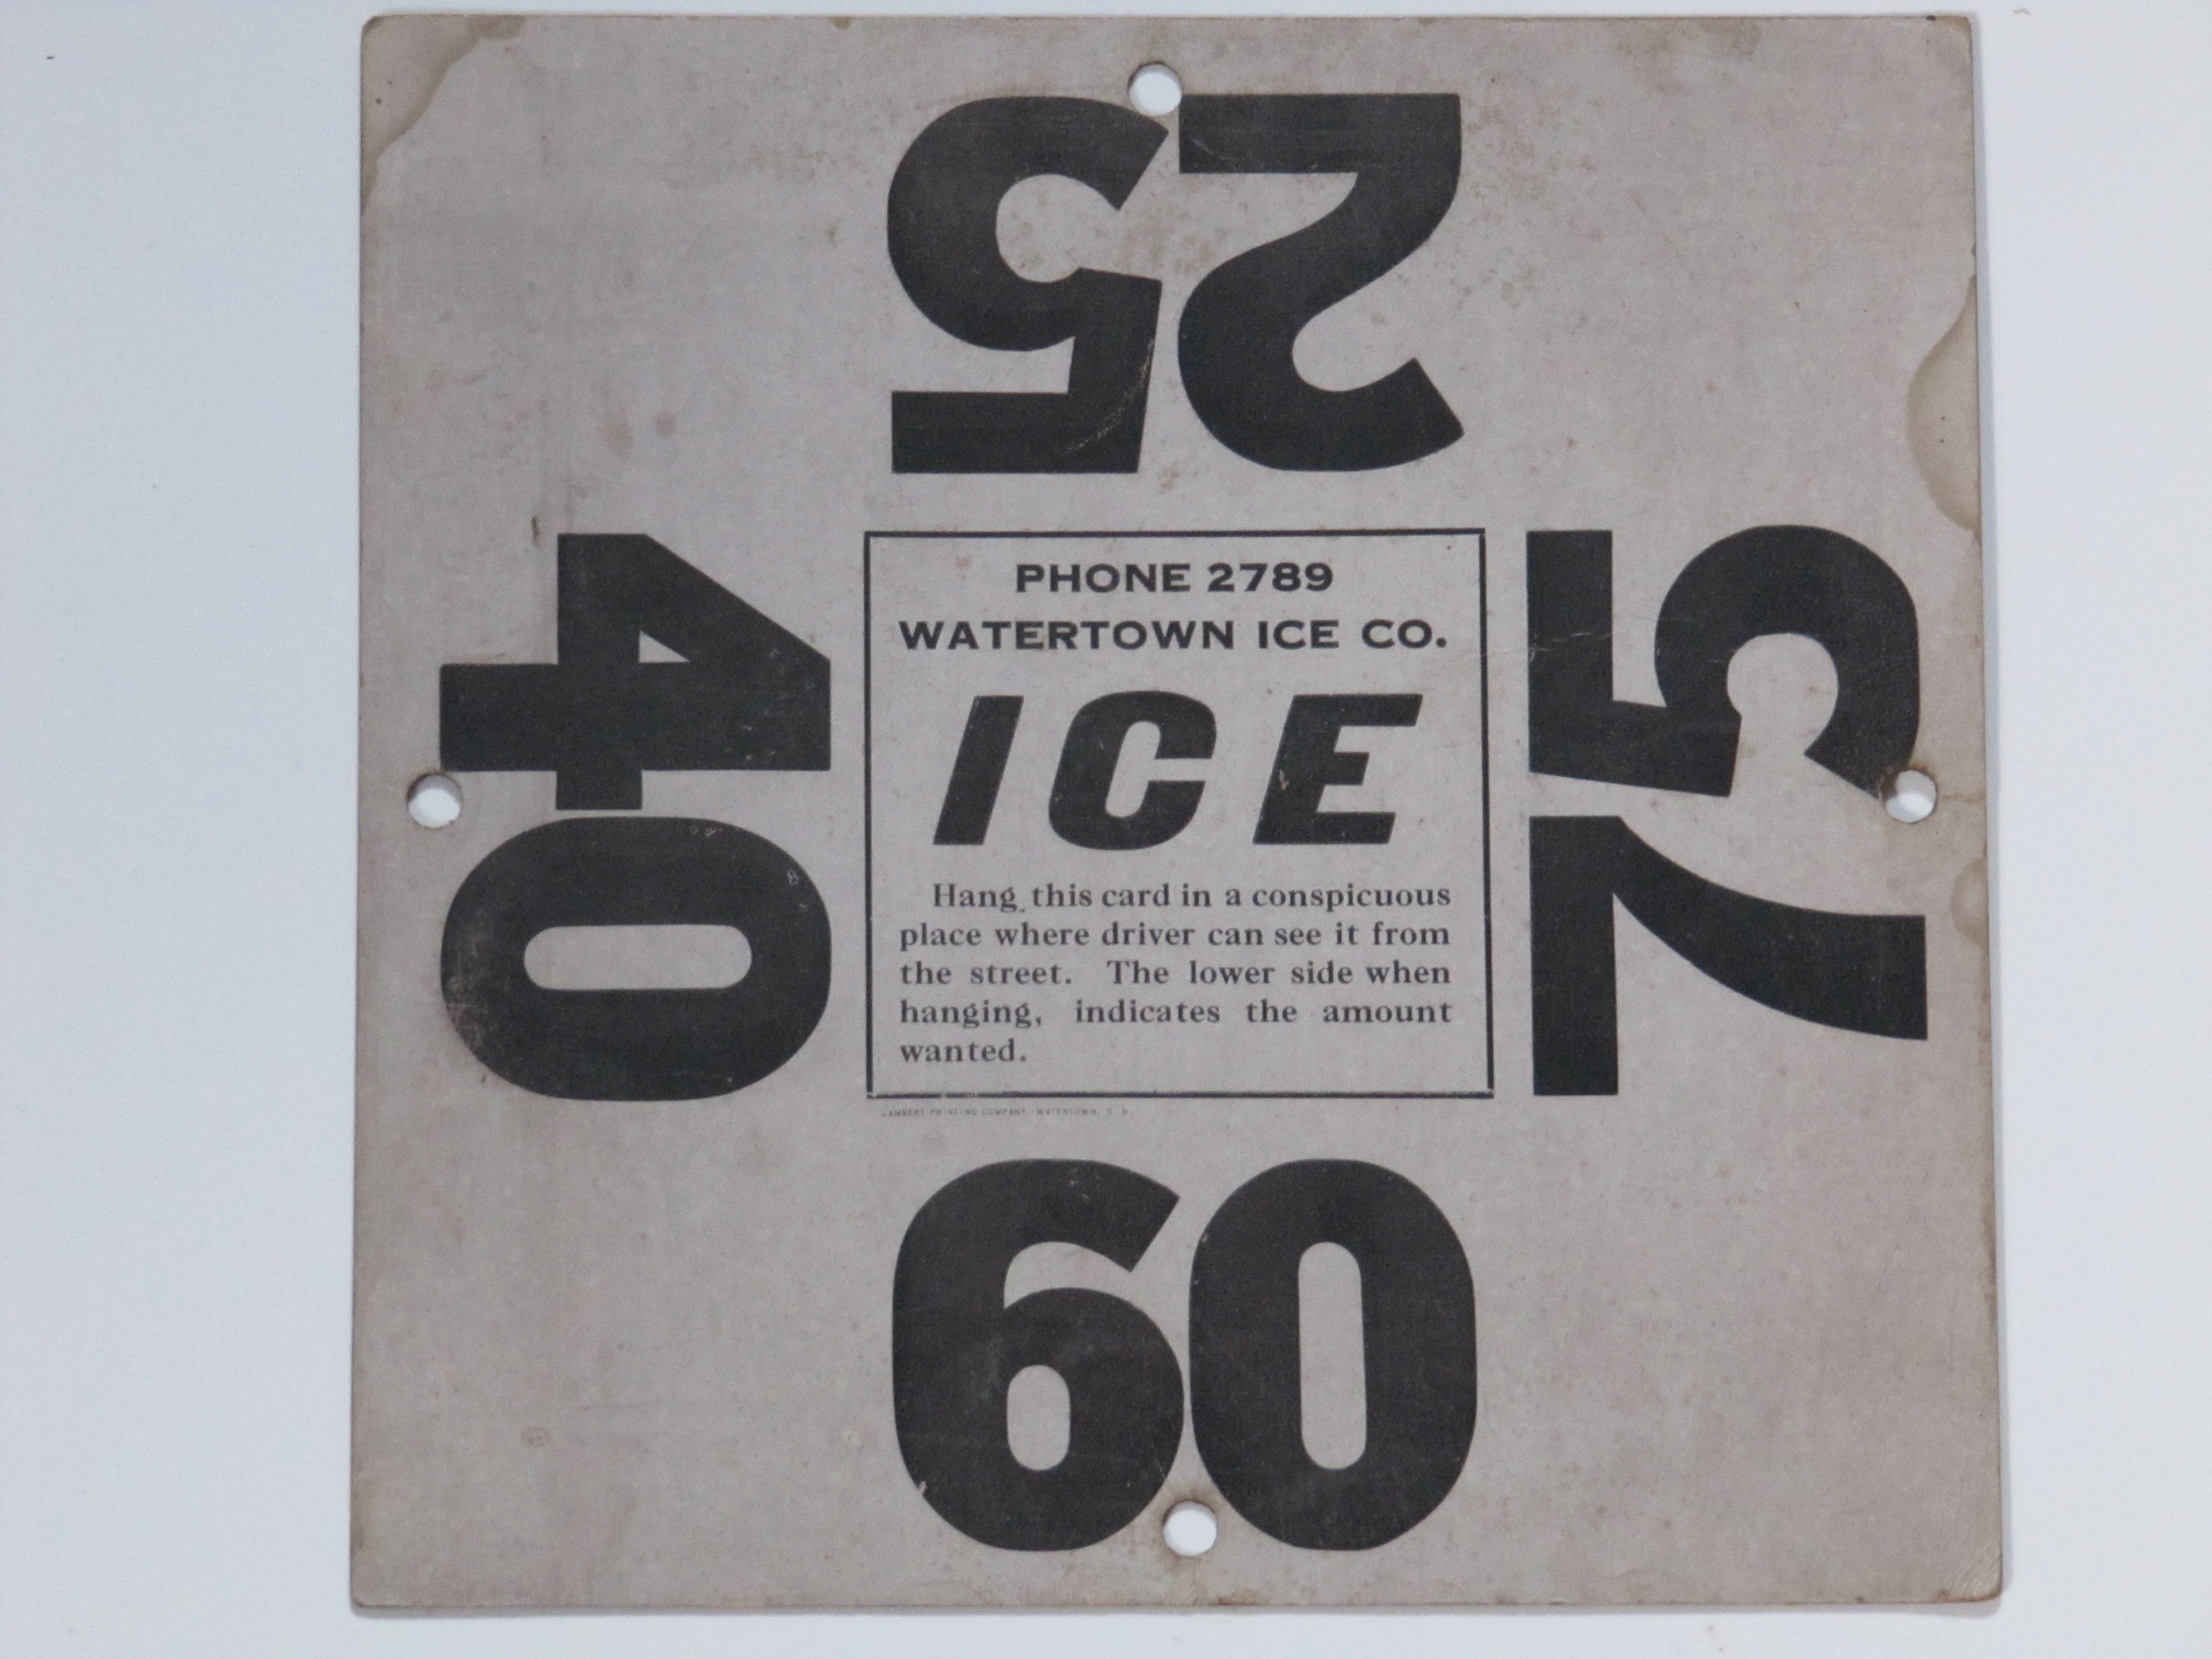 Watertown Ice Co.